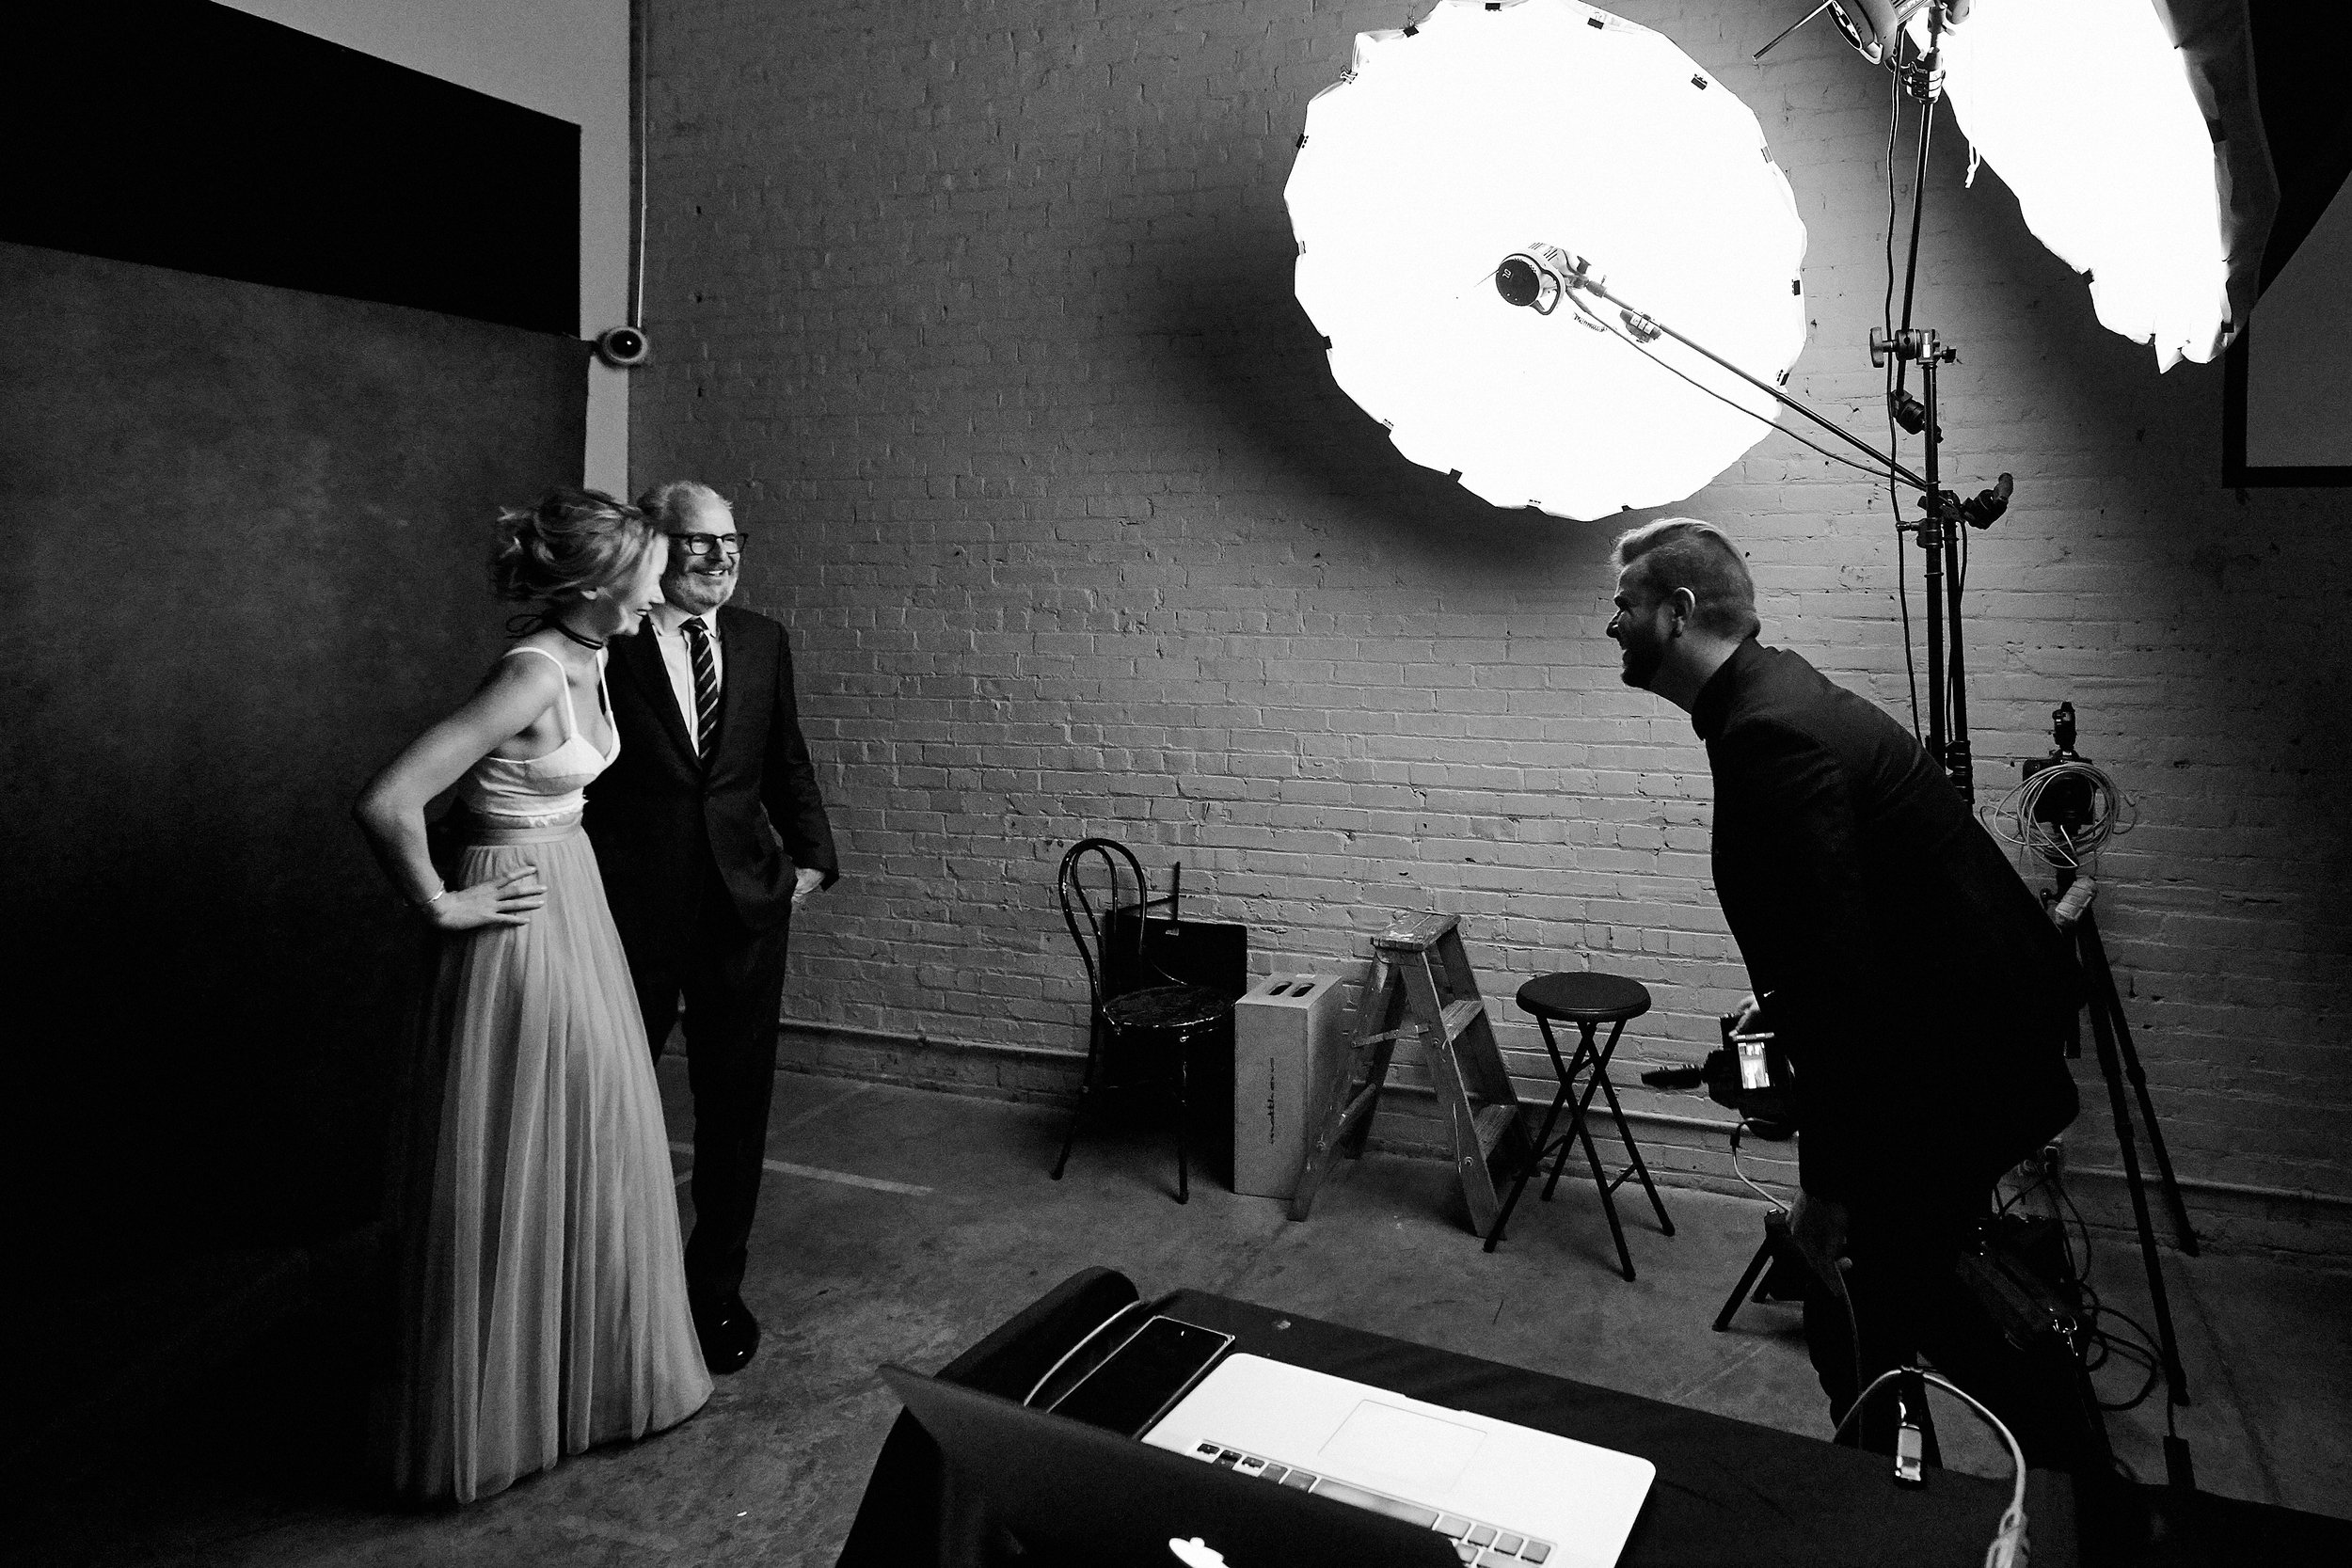 Clay_Cook_Jennifer_Lawrence_Behind_The_Scenes_Francis_Lawrence.jpg